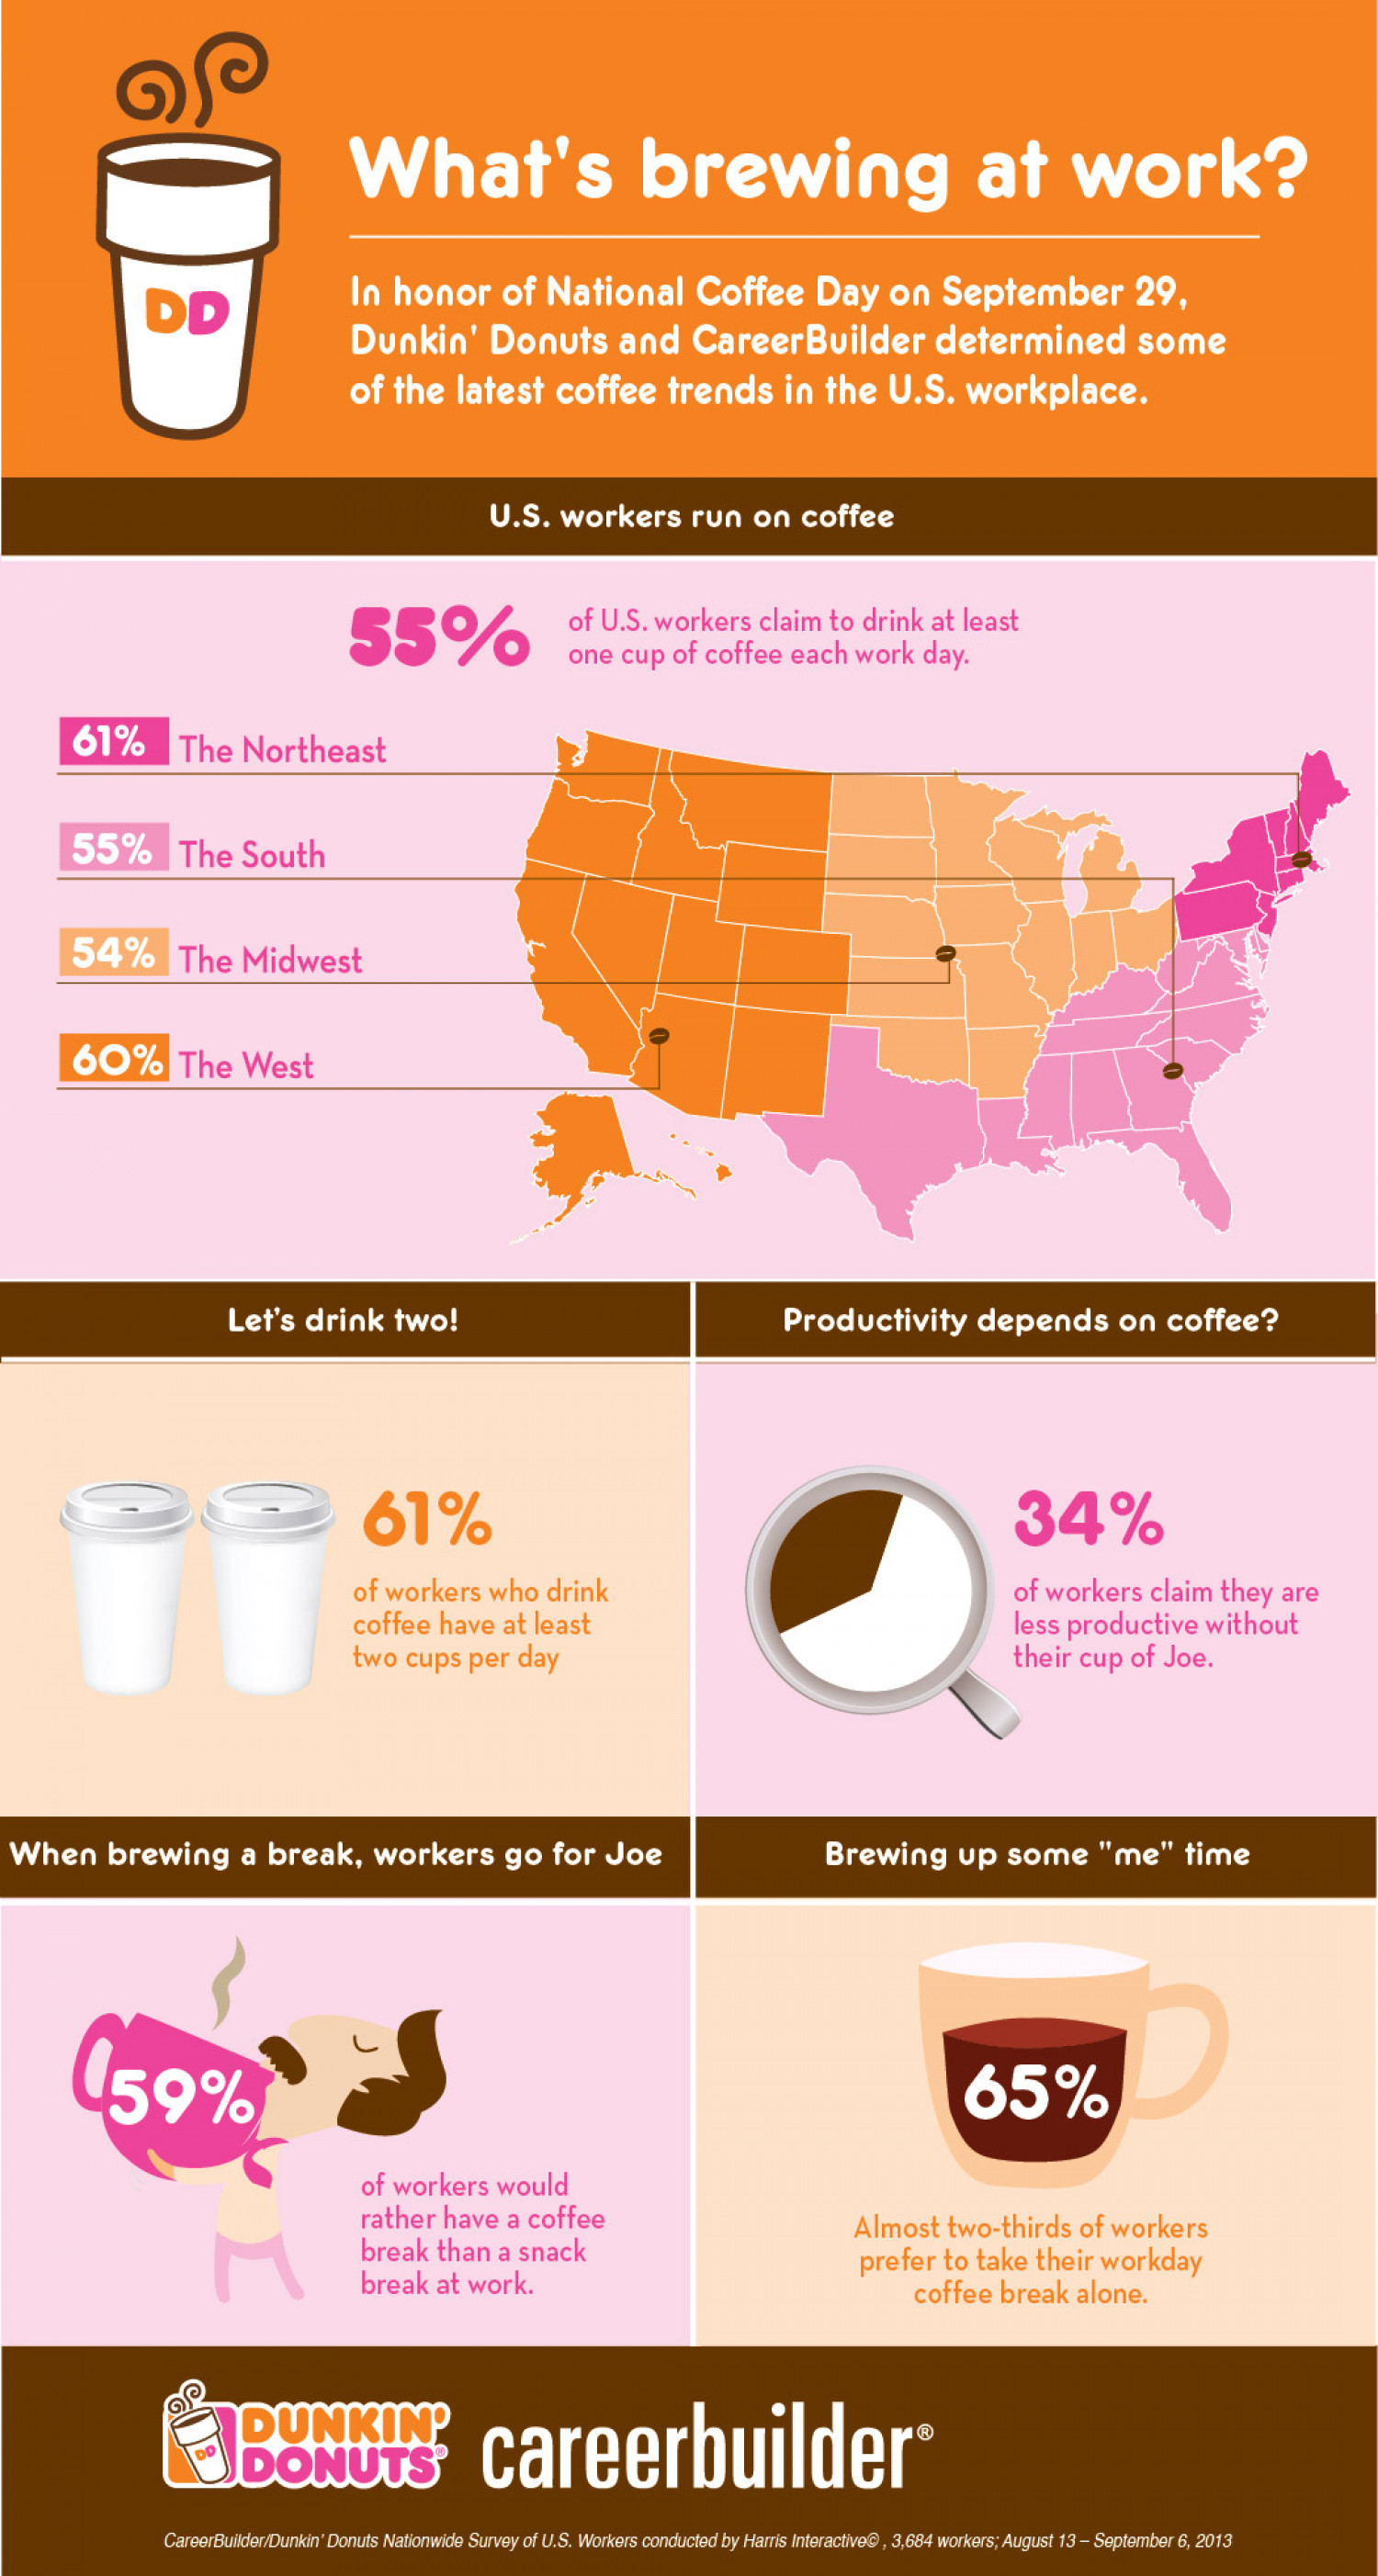 Dunkin' Donuts and CareerBuilder Celebrate National Coffee Day  Infographic